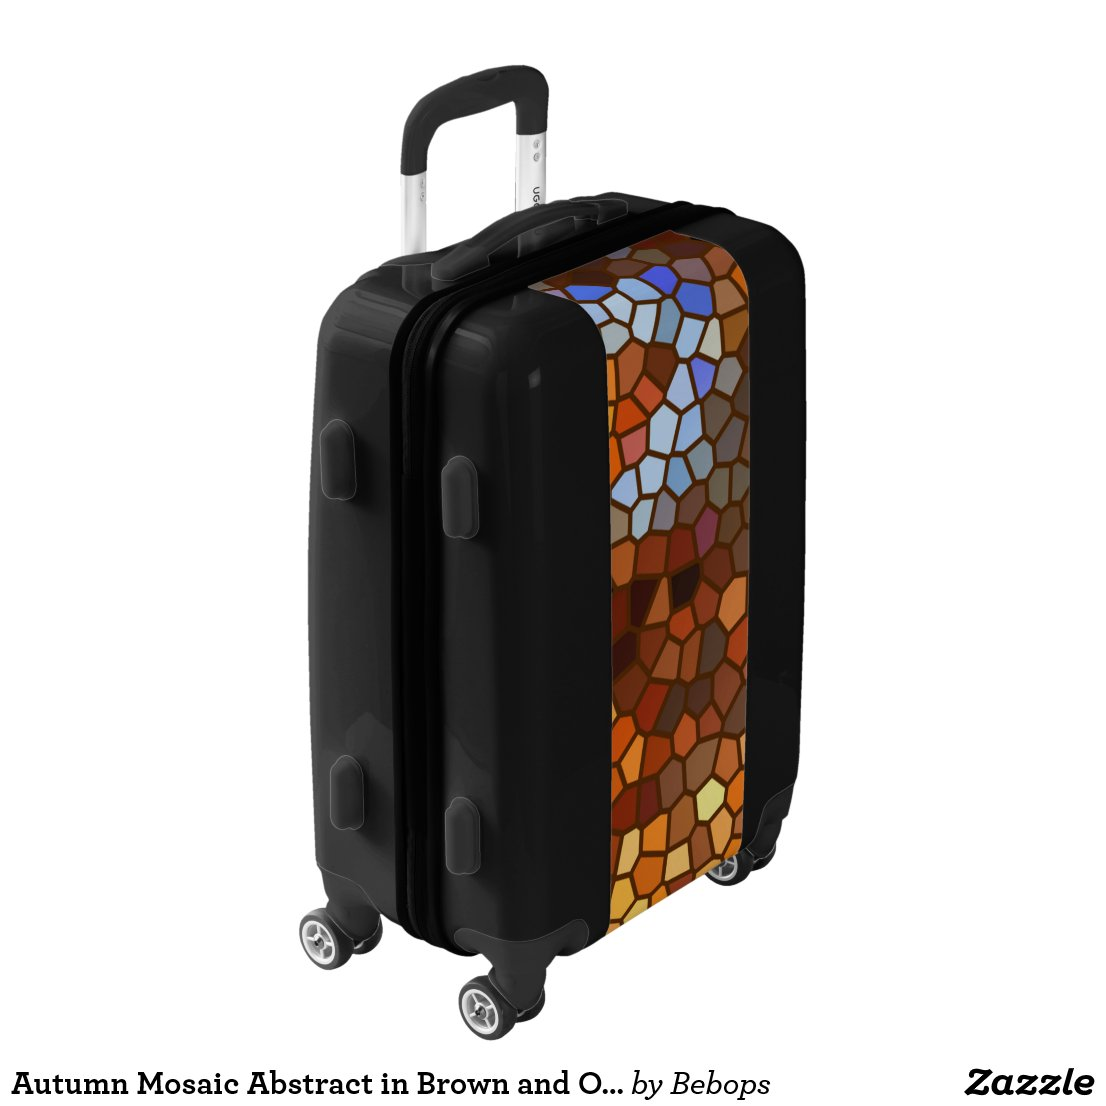 Autumn Mosaic Abstract in Brown and Orange Luggage